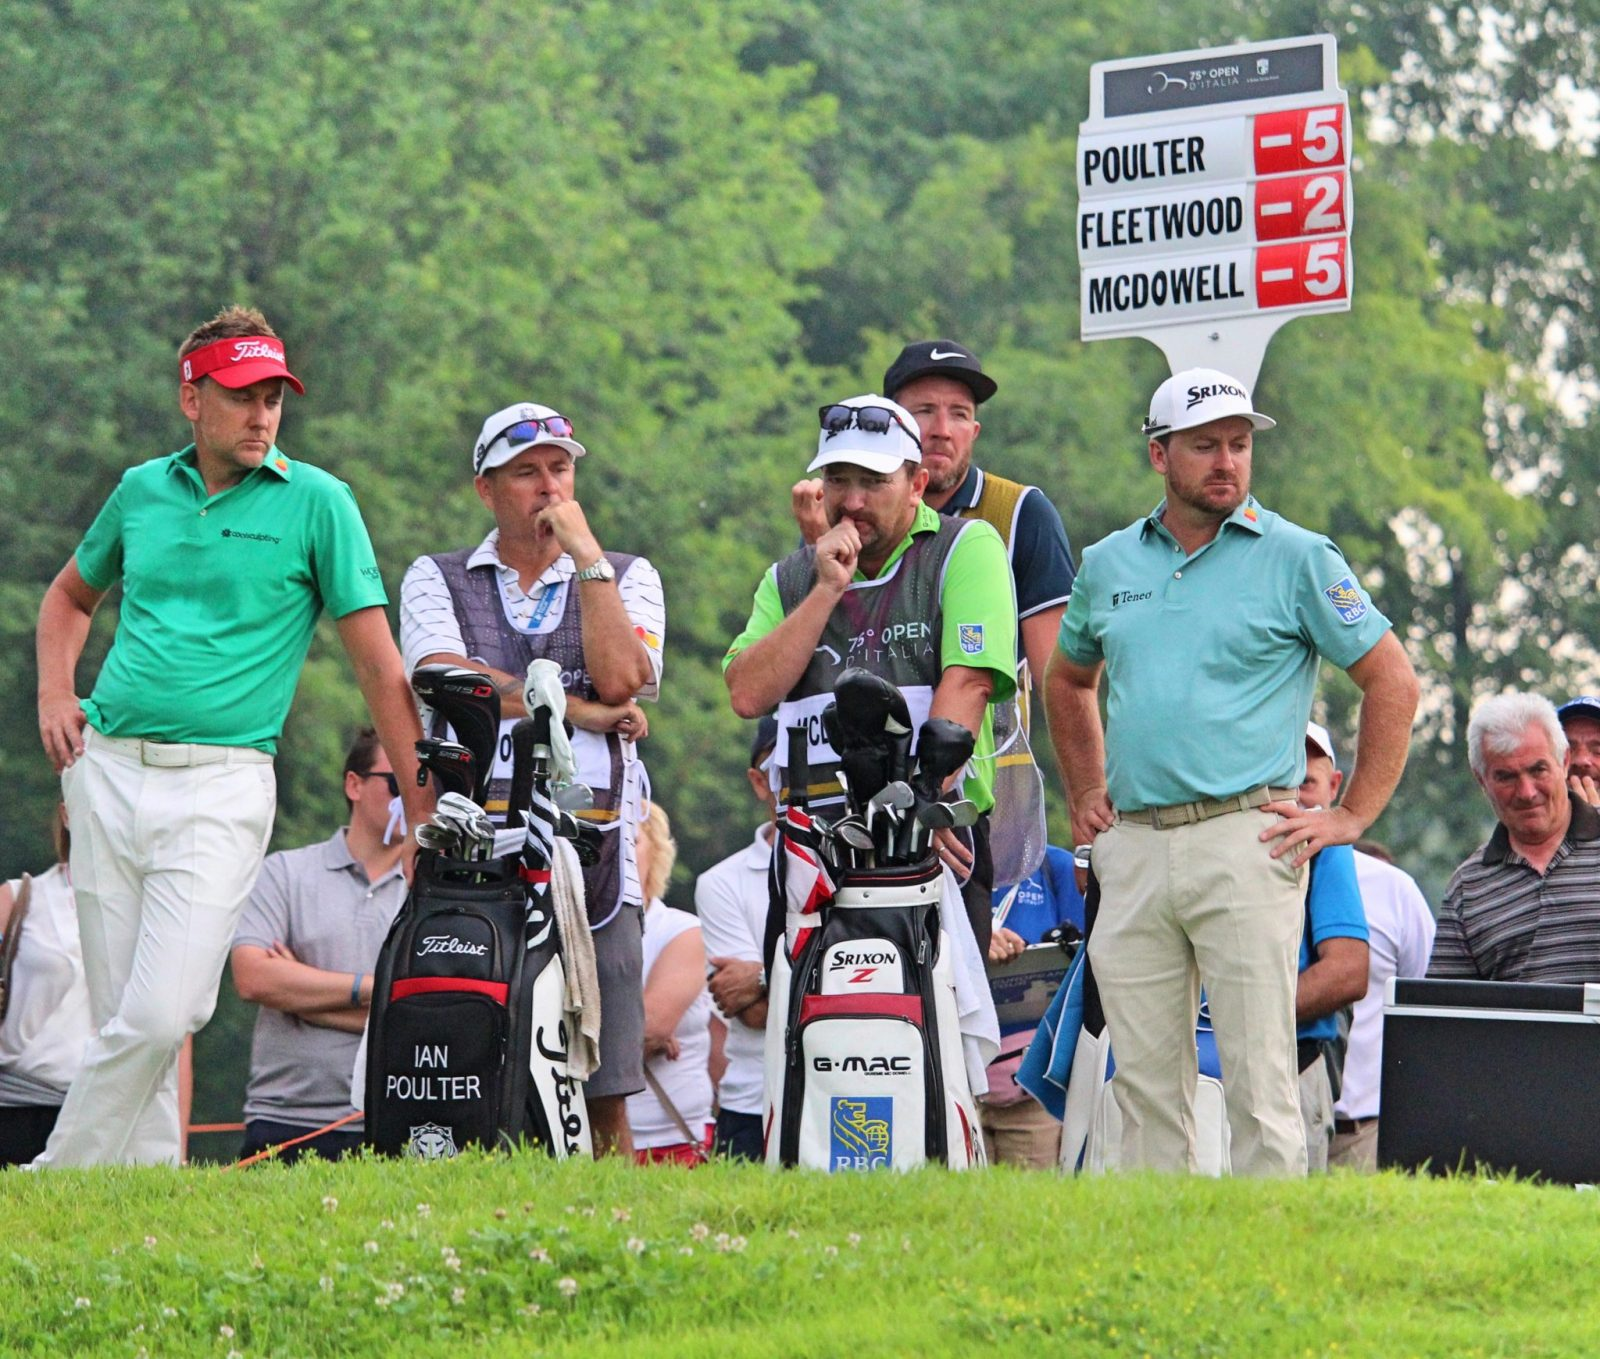 Poulter and McDowell on the 18th tee